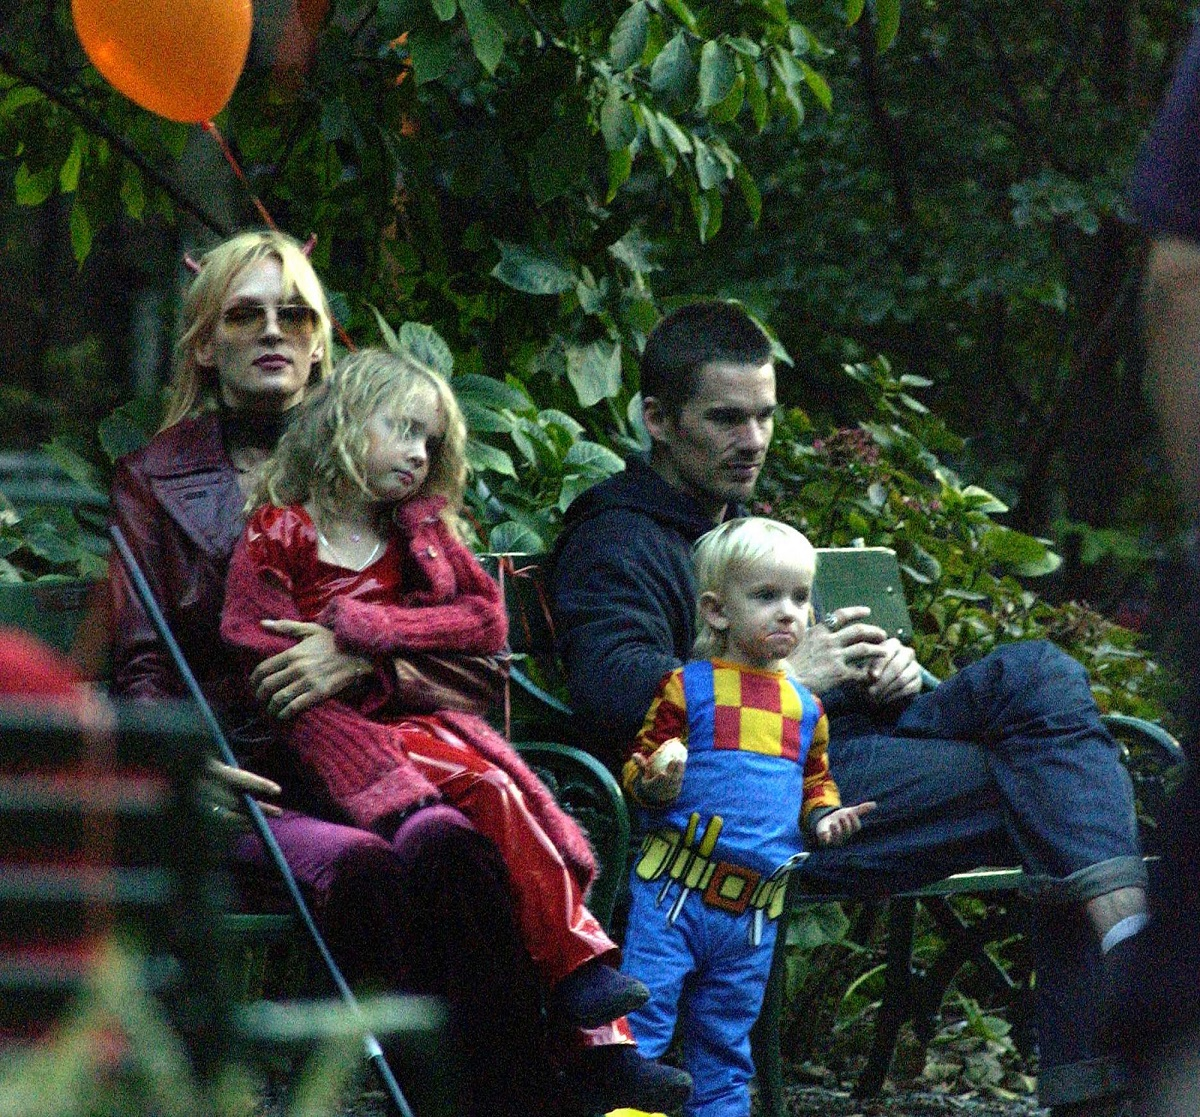 Ethan Hawk visits Uma Thurman and his kids for Halloween on October 31, 2003, in New York City.